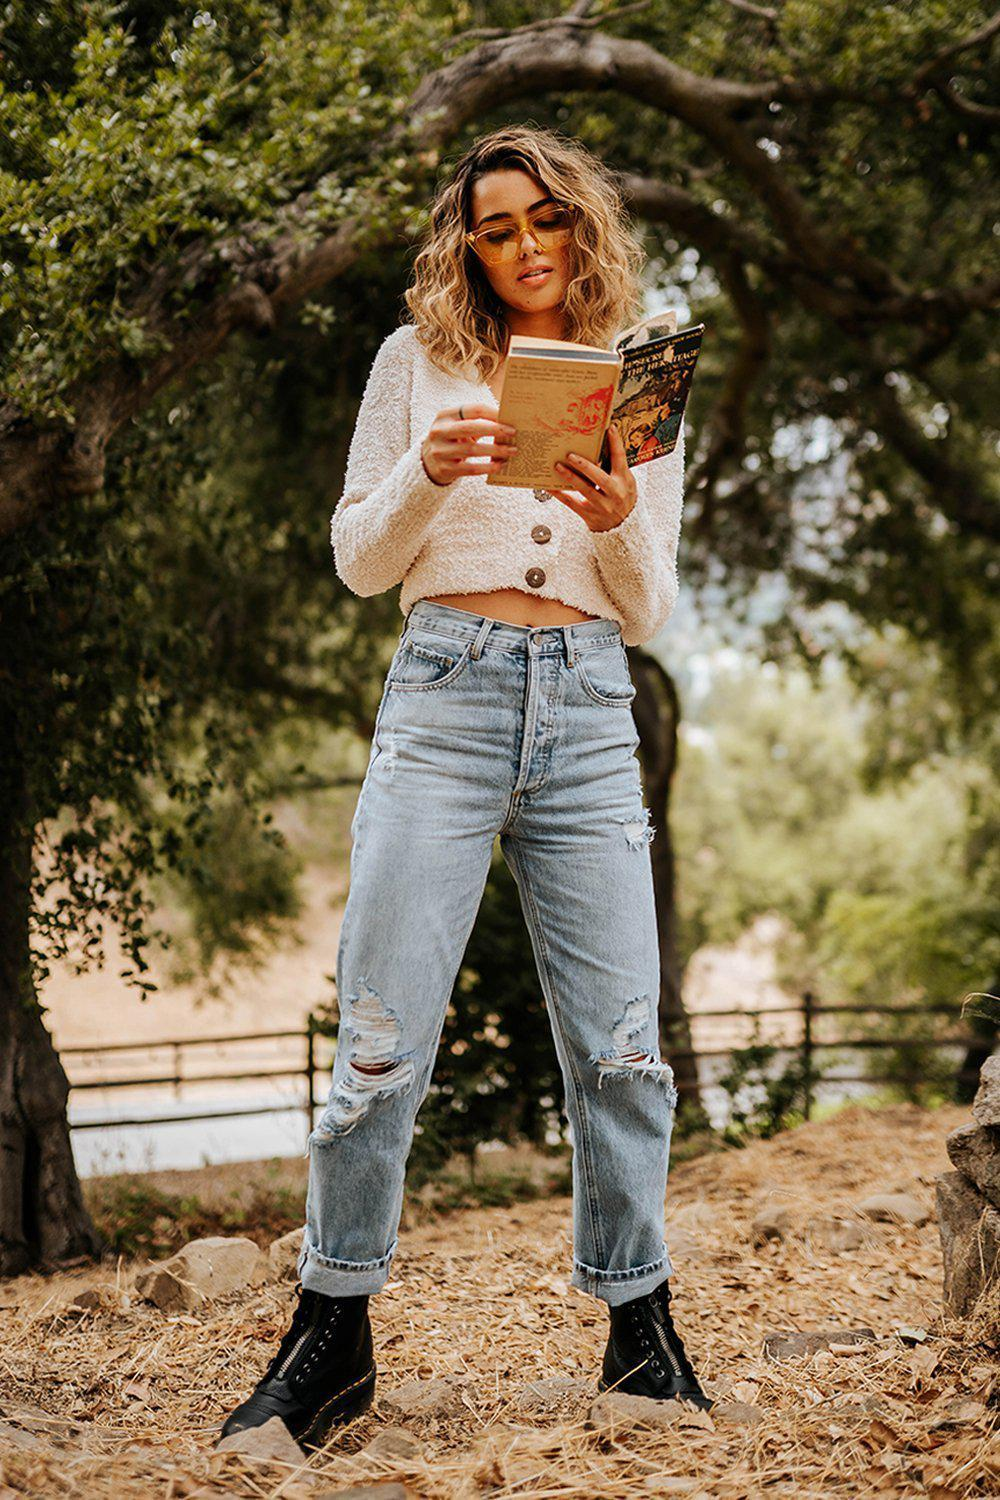 best_seller, Risk Taker Straight Leg Jeans - FINAL SALE, Bottom, women's clothing, dresses, skirts, coats, jackets, shoes, boots, tops, tee shirts, jeans, free people, levi's, rollas, jumpsuits, bottoms, tops, sweaters, pullovers, pants, shorts, sweats,.